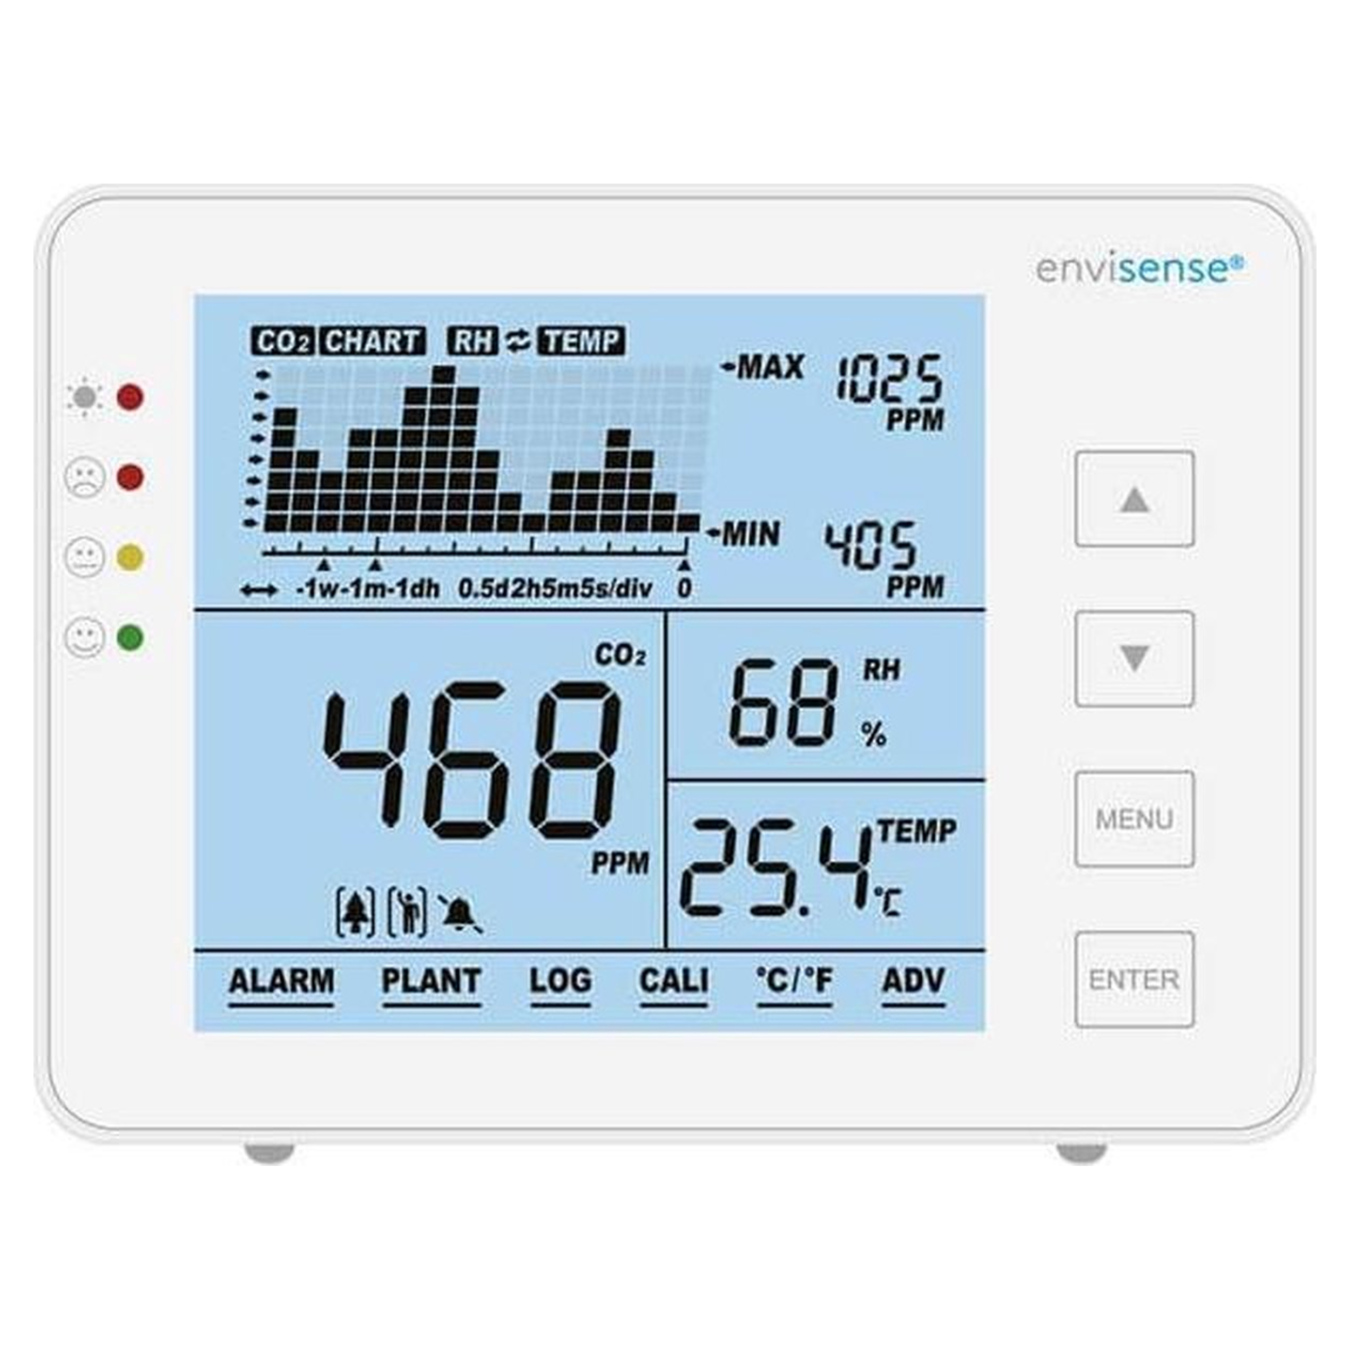 Koop Envisense CO2 monitor